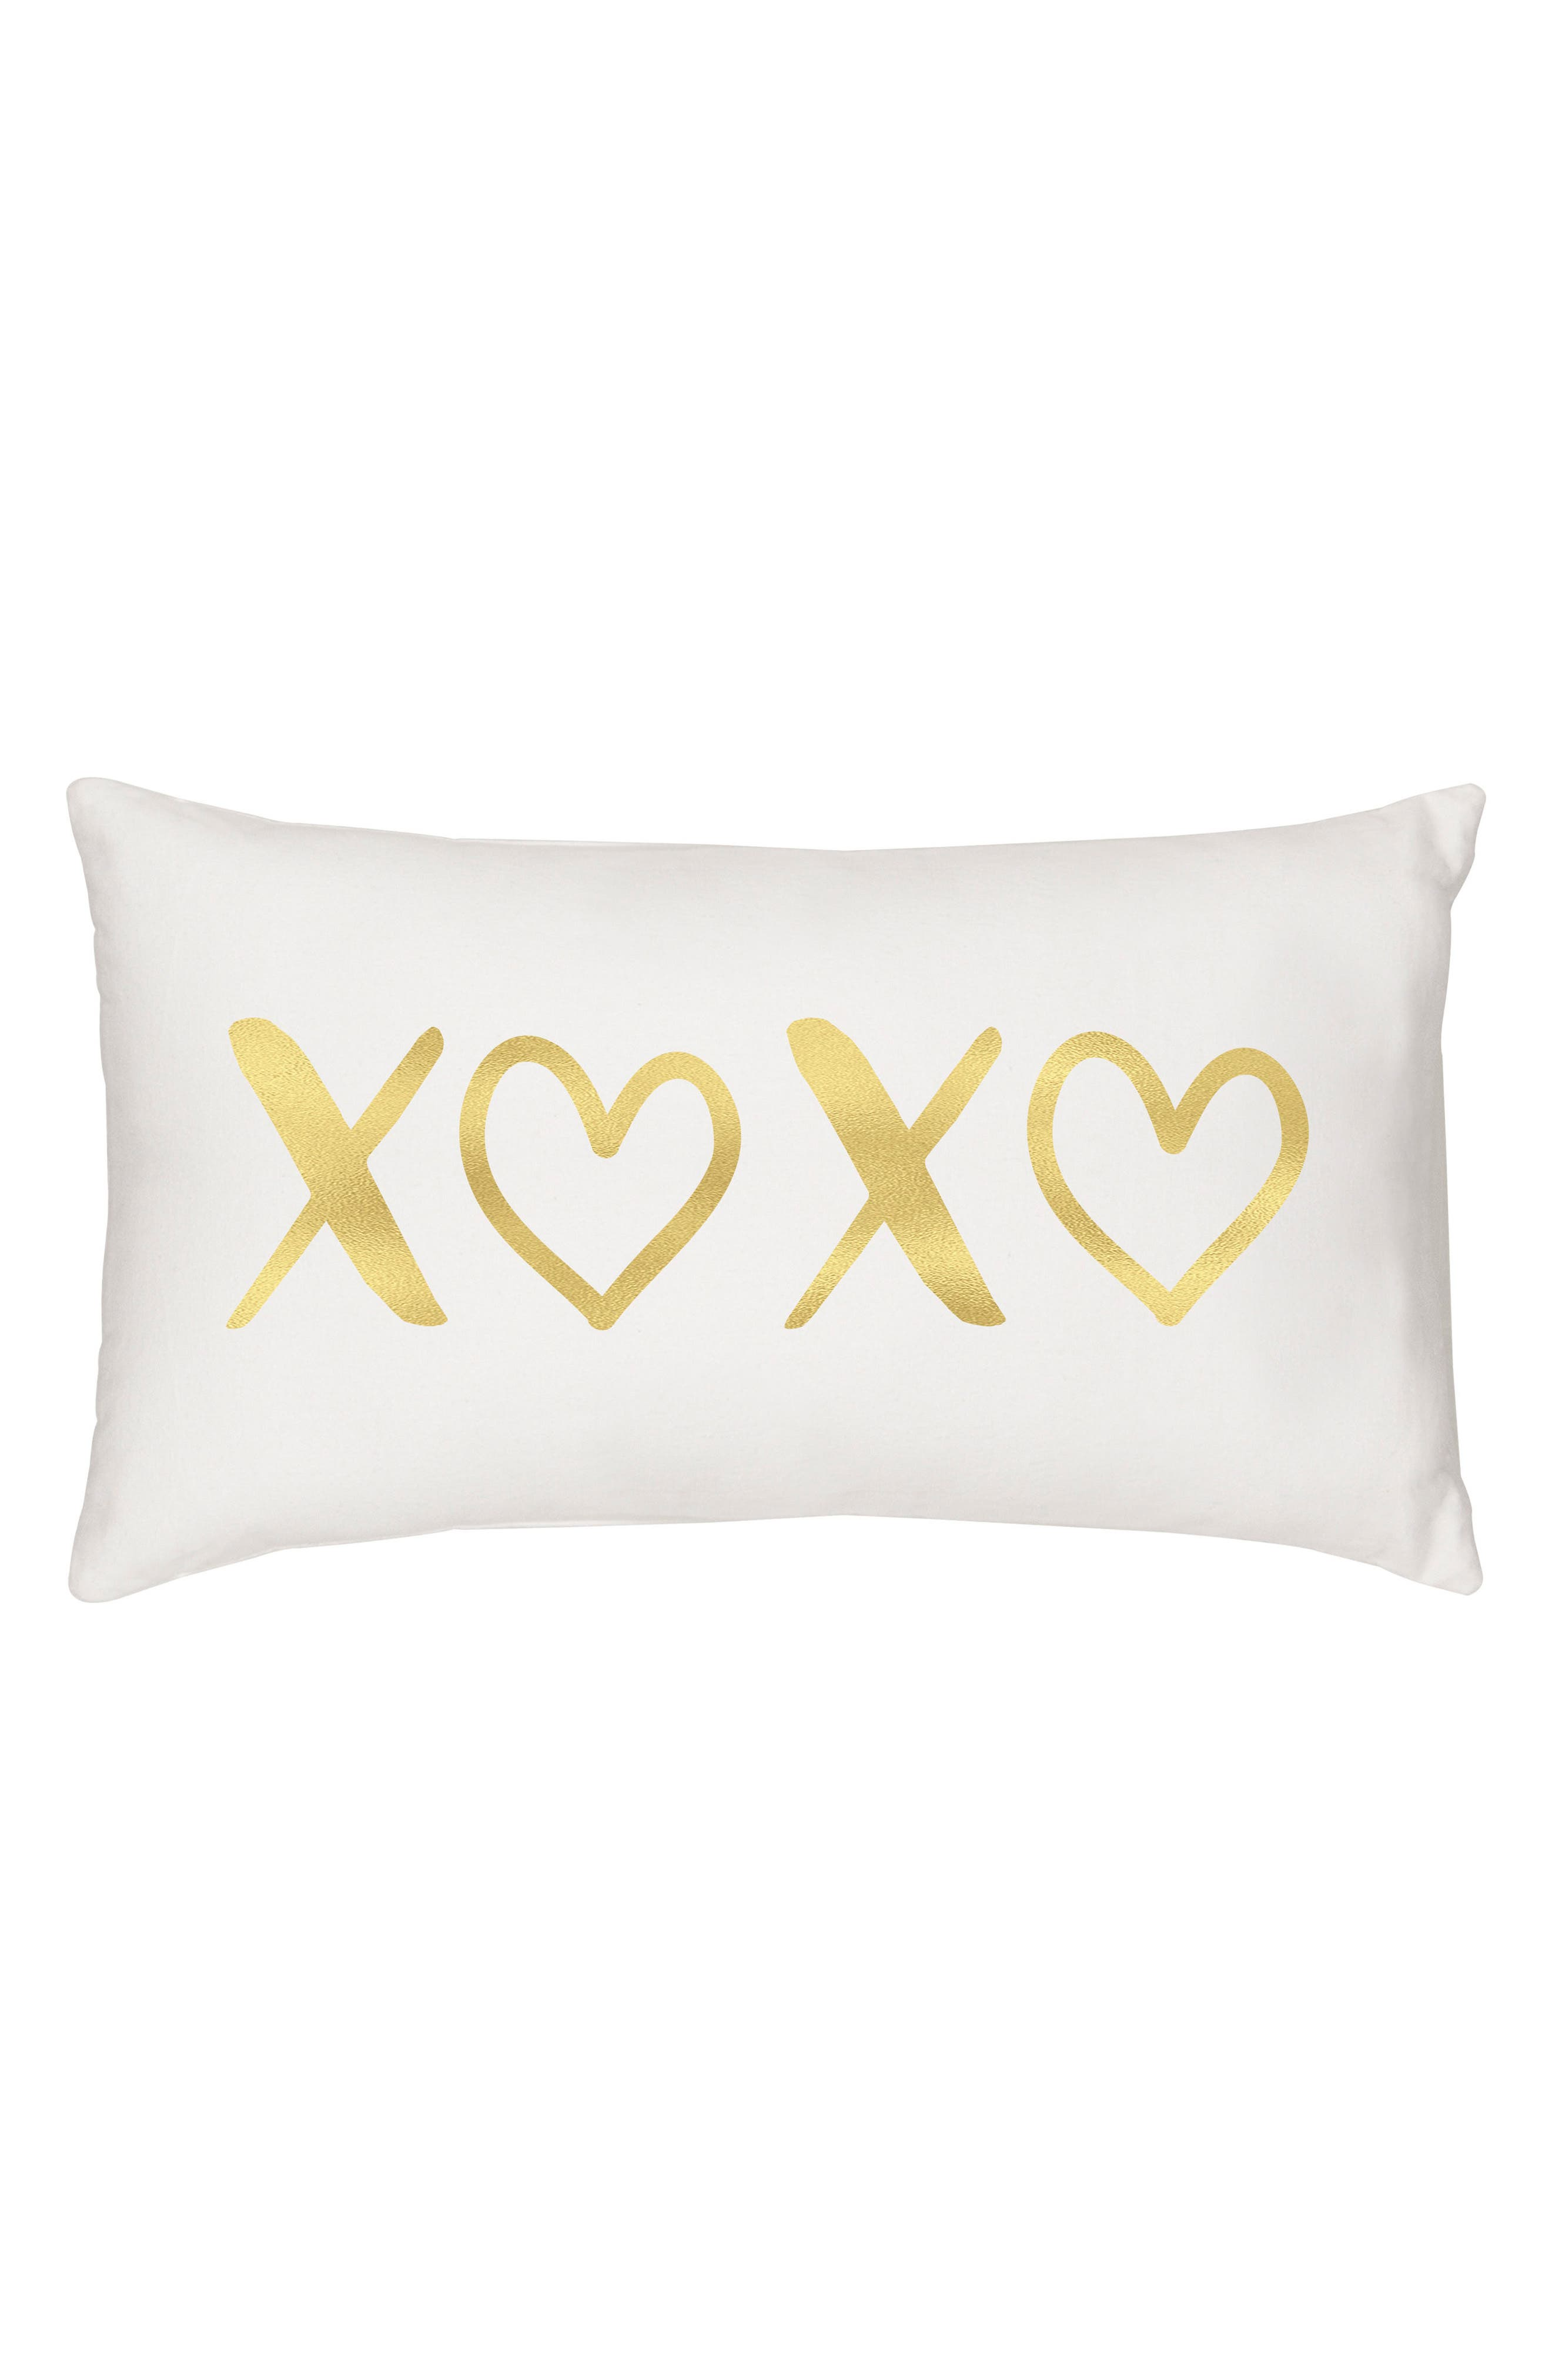 Alternate Image 1 Selected - Cathy's Concepts XOXO Accent Pillow